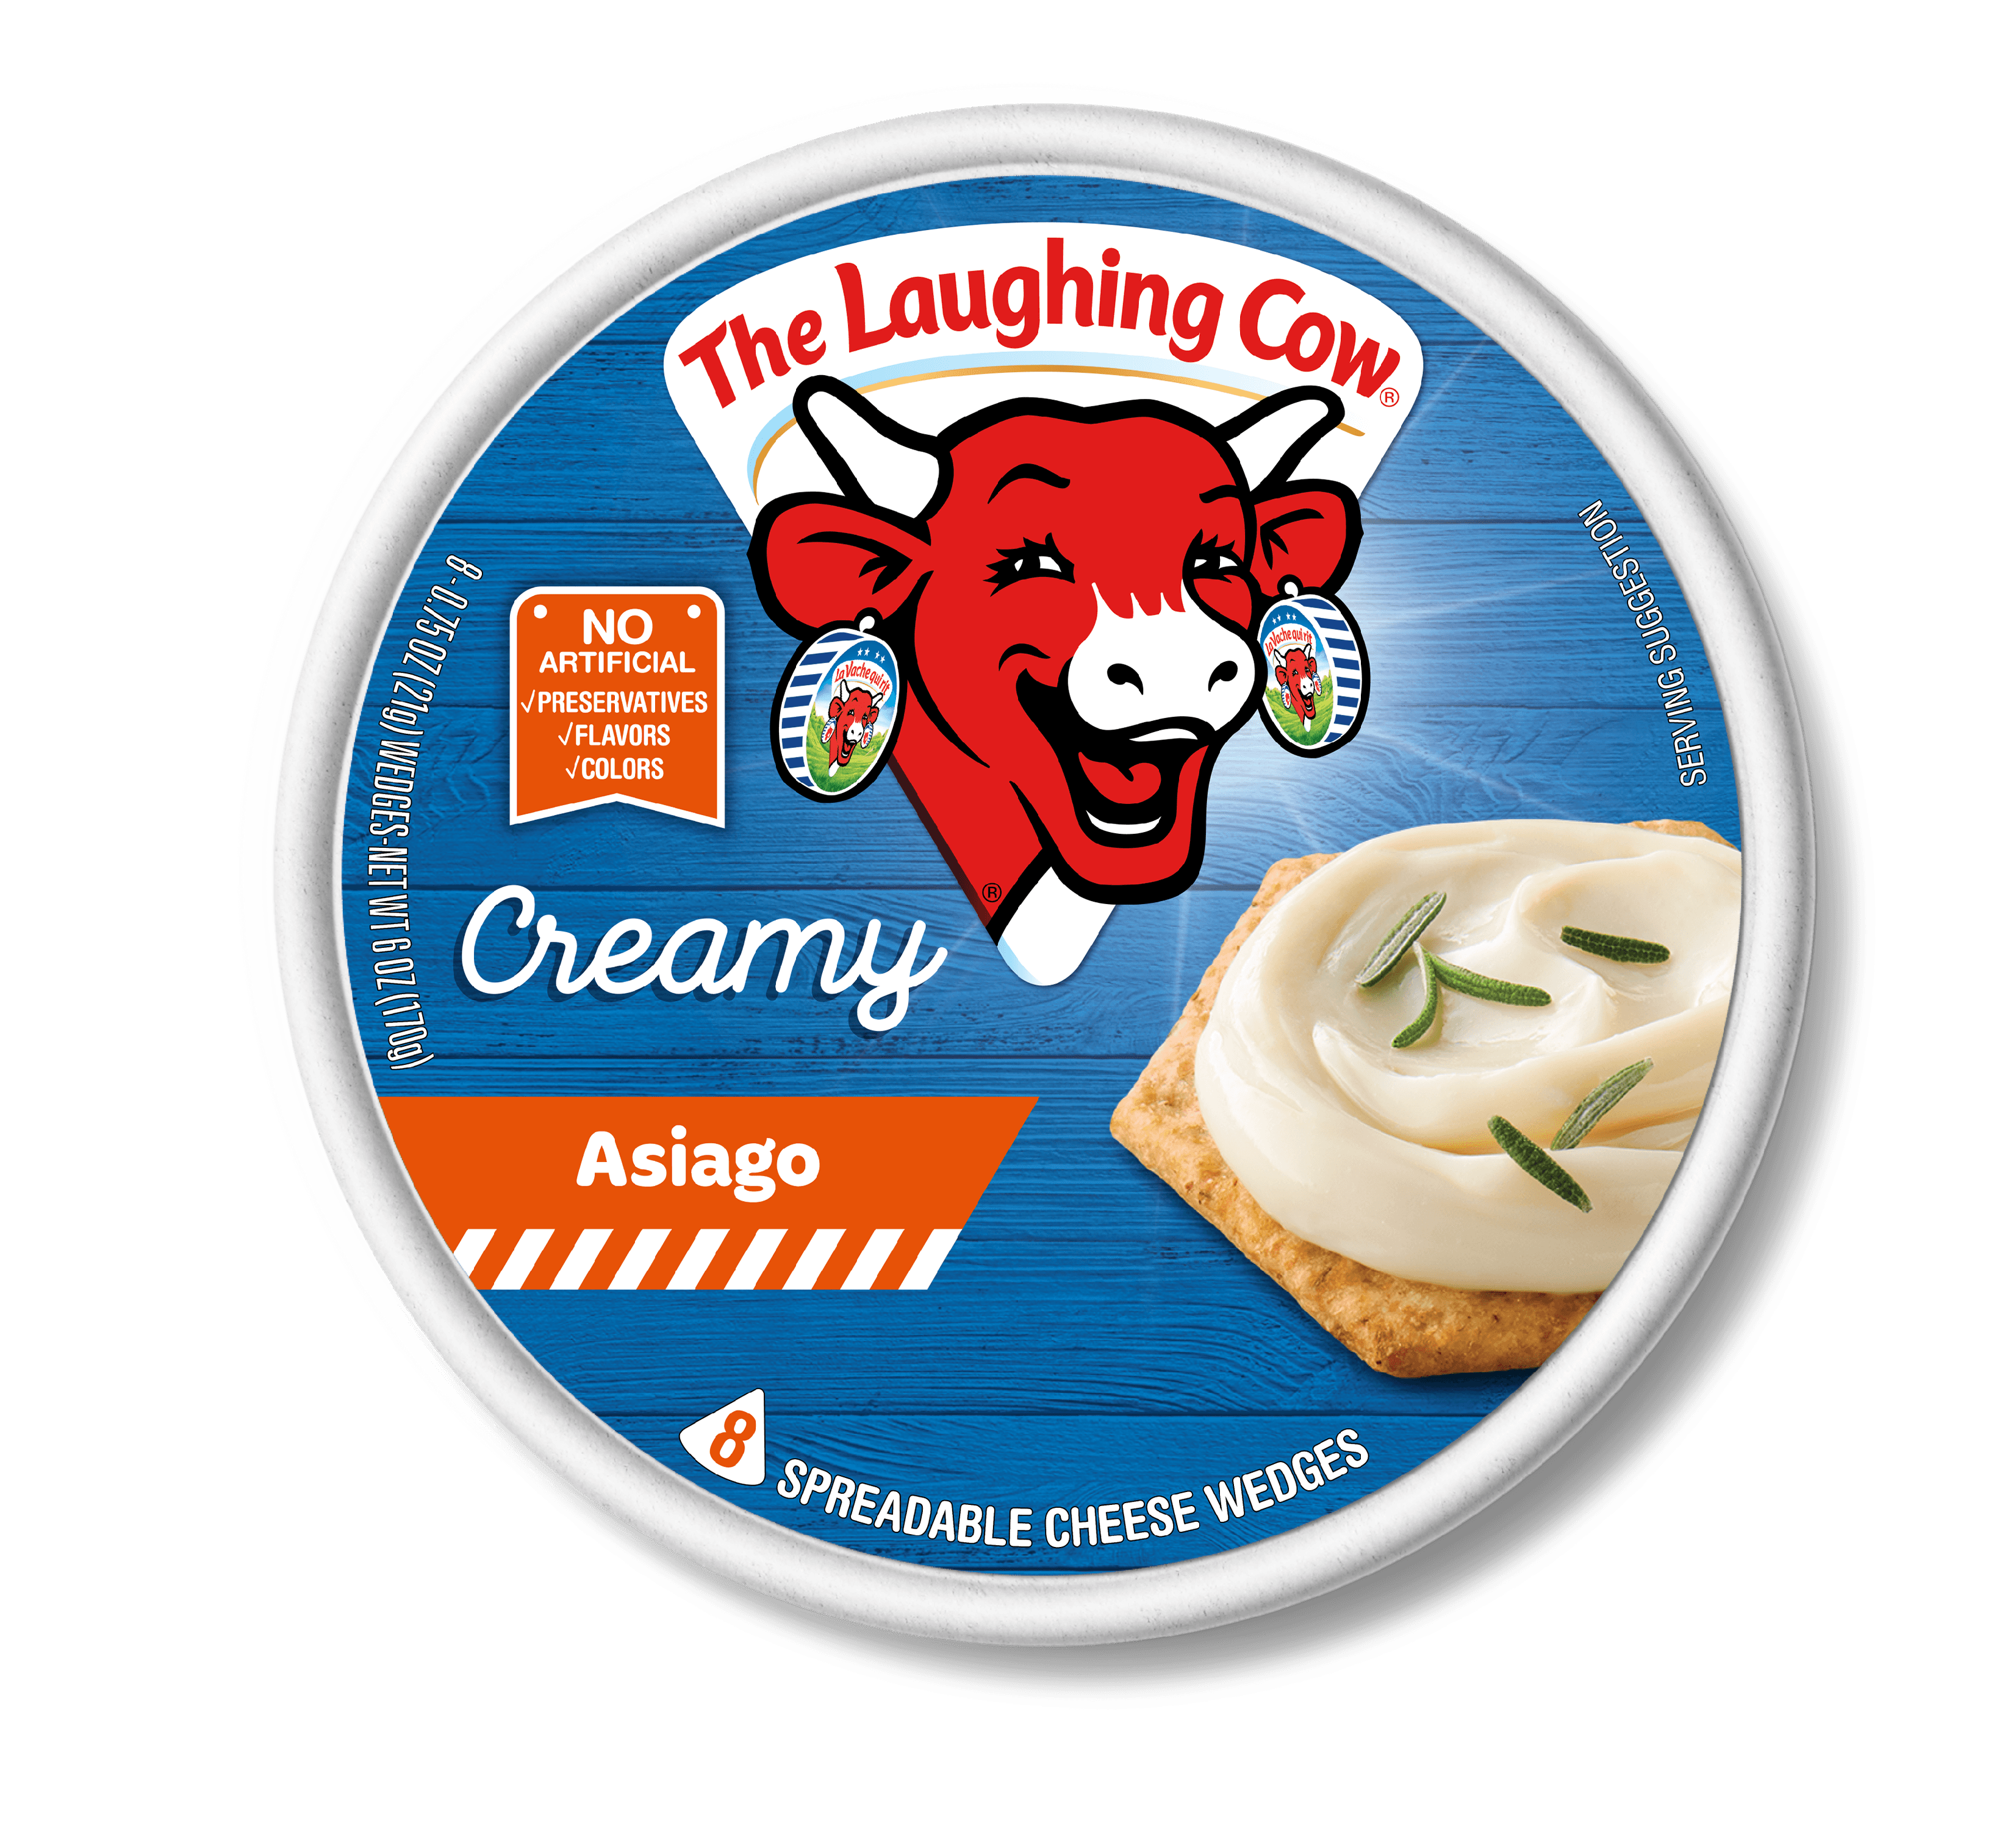 The Laughing Cow Creamy Asiago Spreadable Cheese Wedges, 8 ct, 6 oz